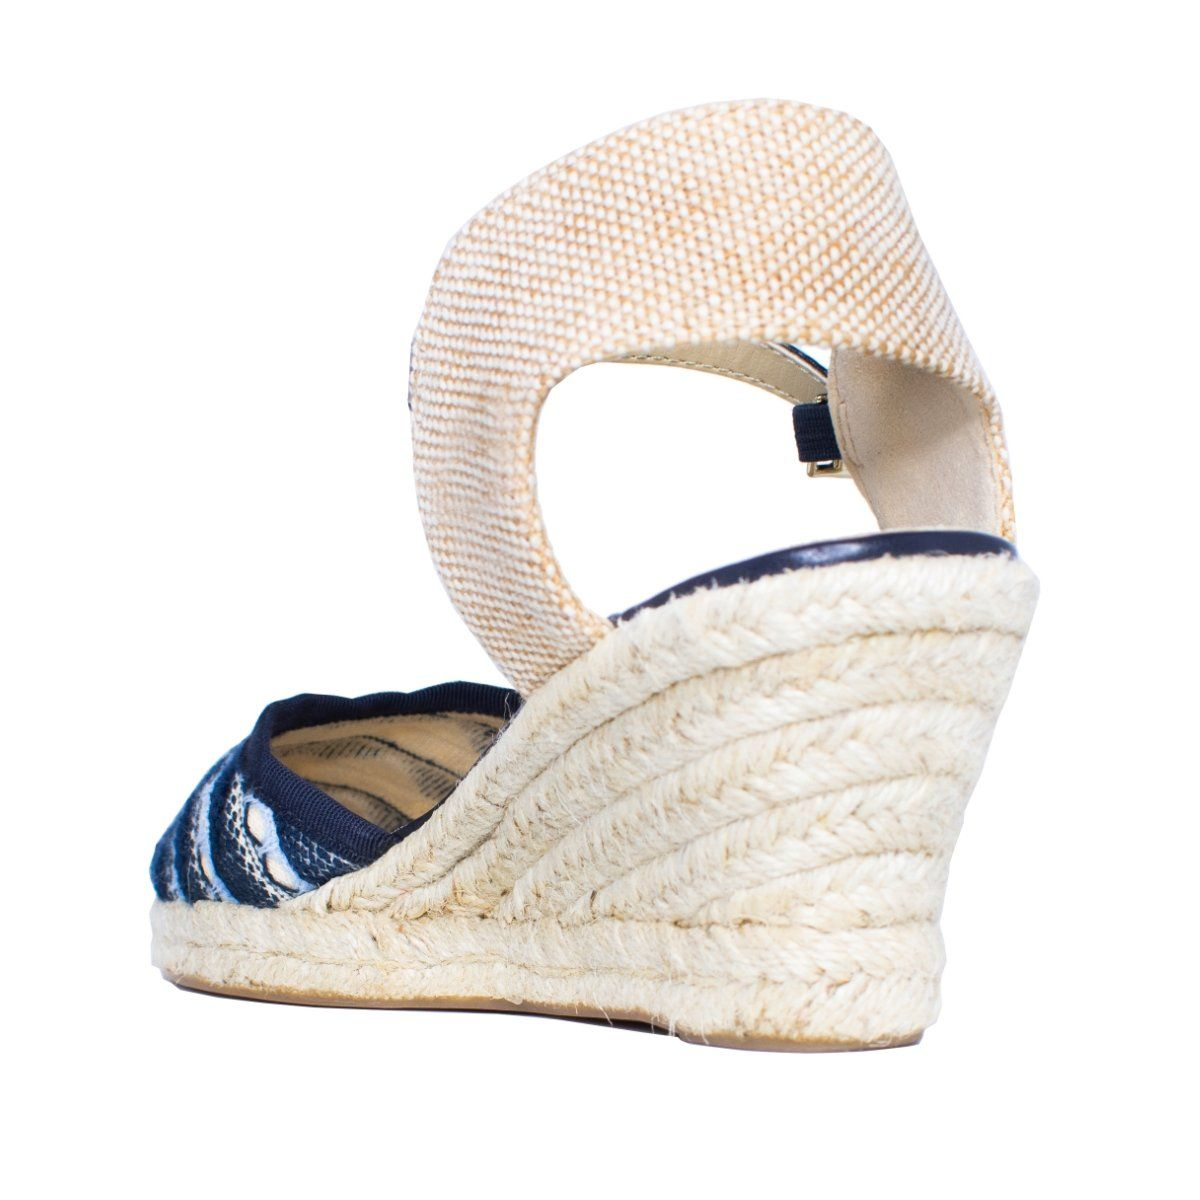 Back view of wedge sandal with heel strap and navy blue woven pattern